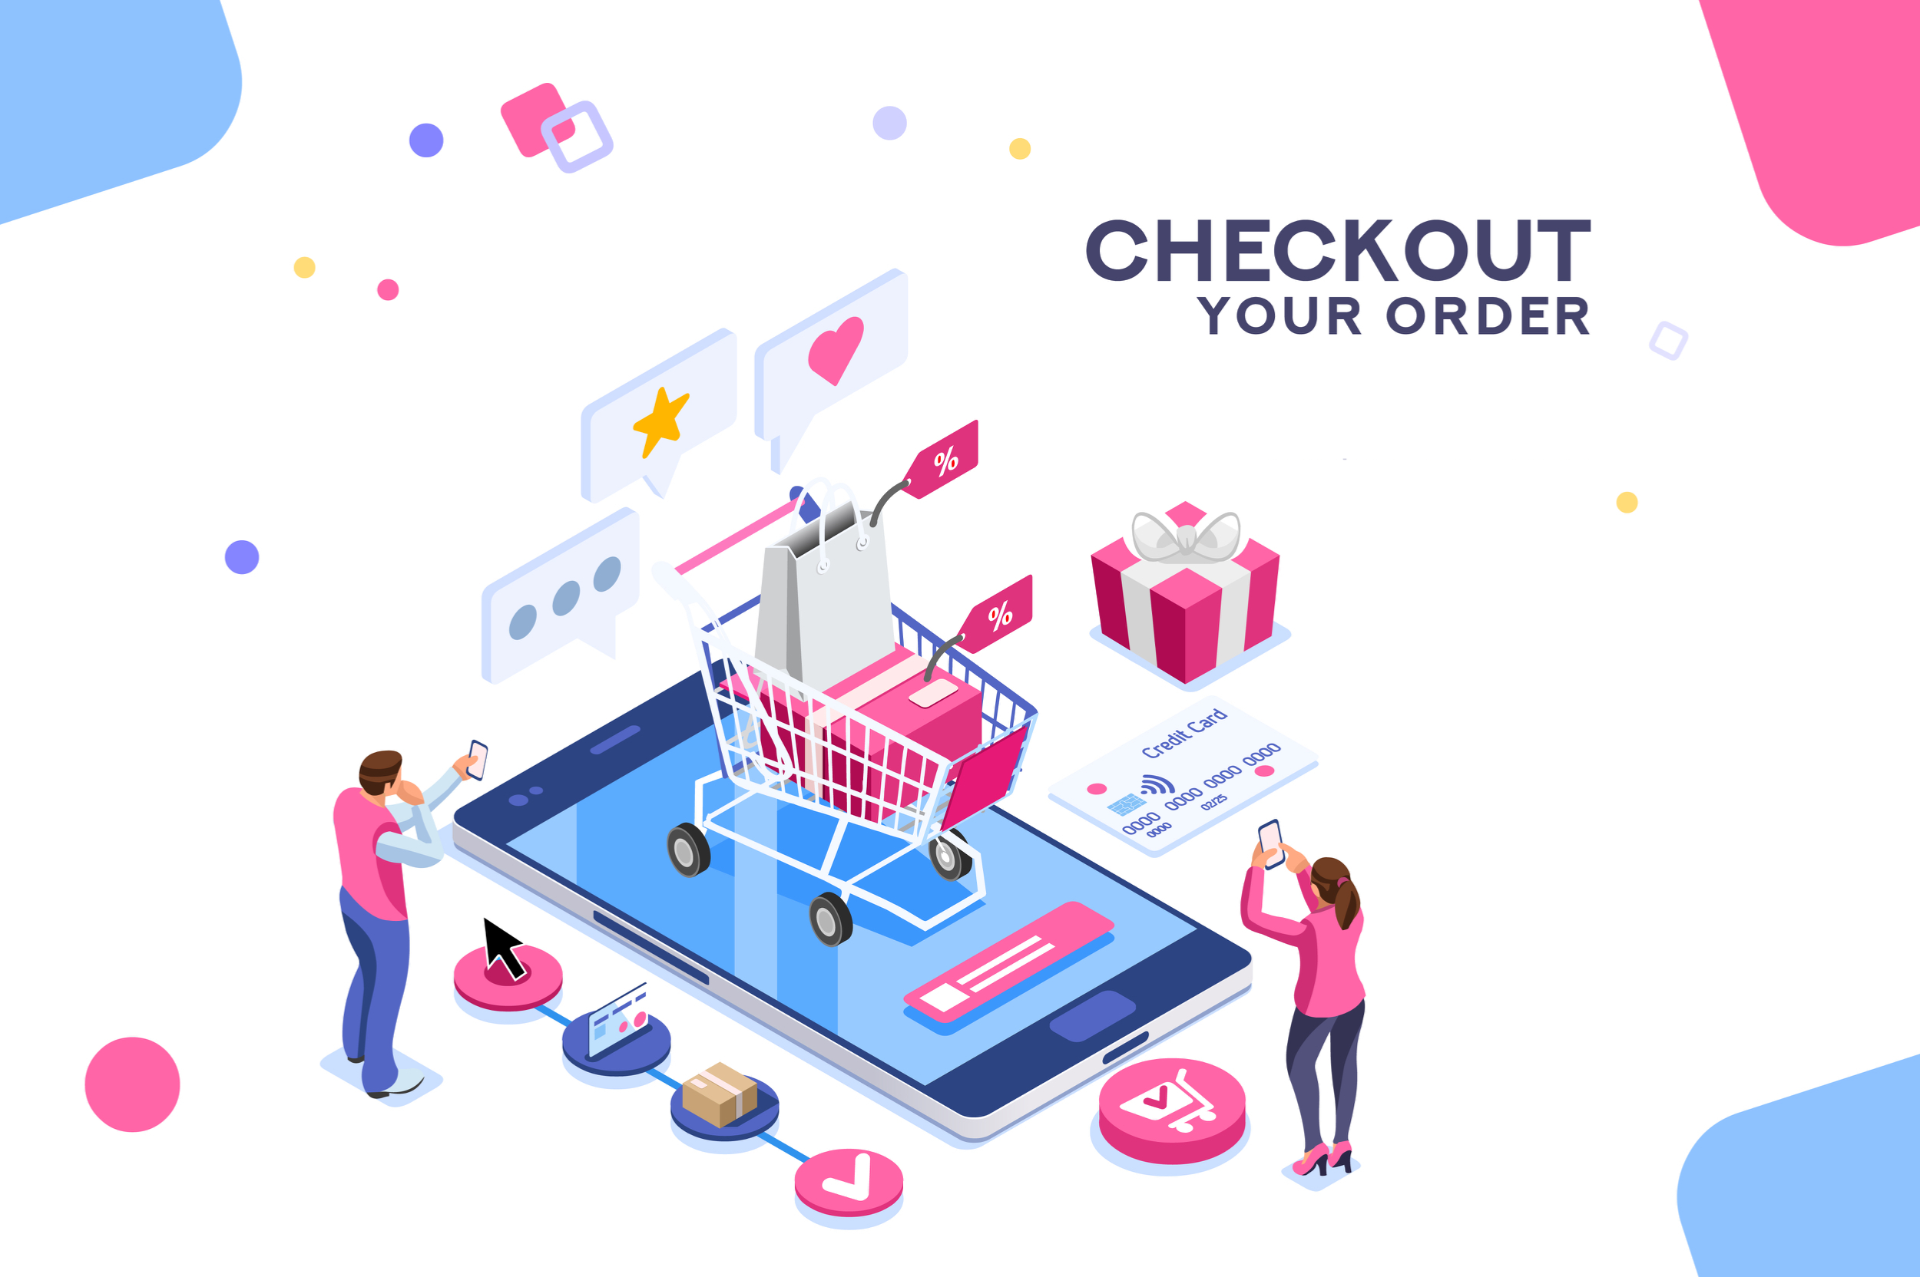 Graphic design of ecomm checkout order process.